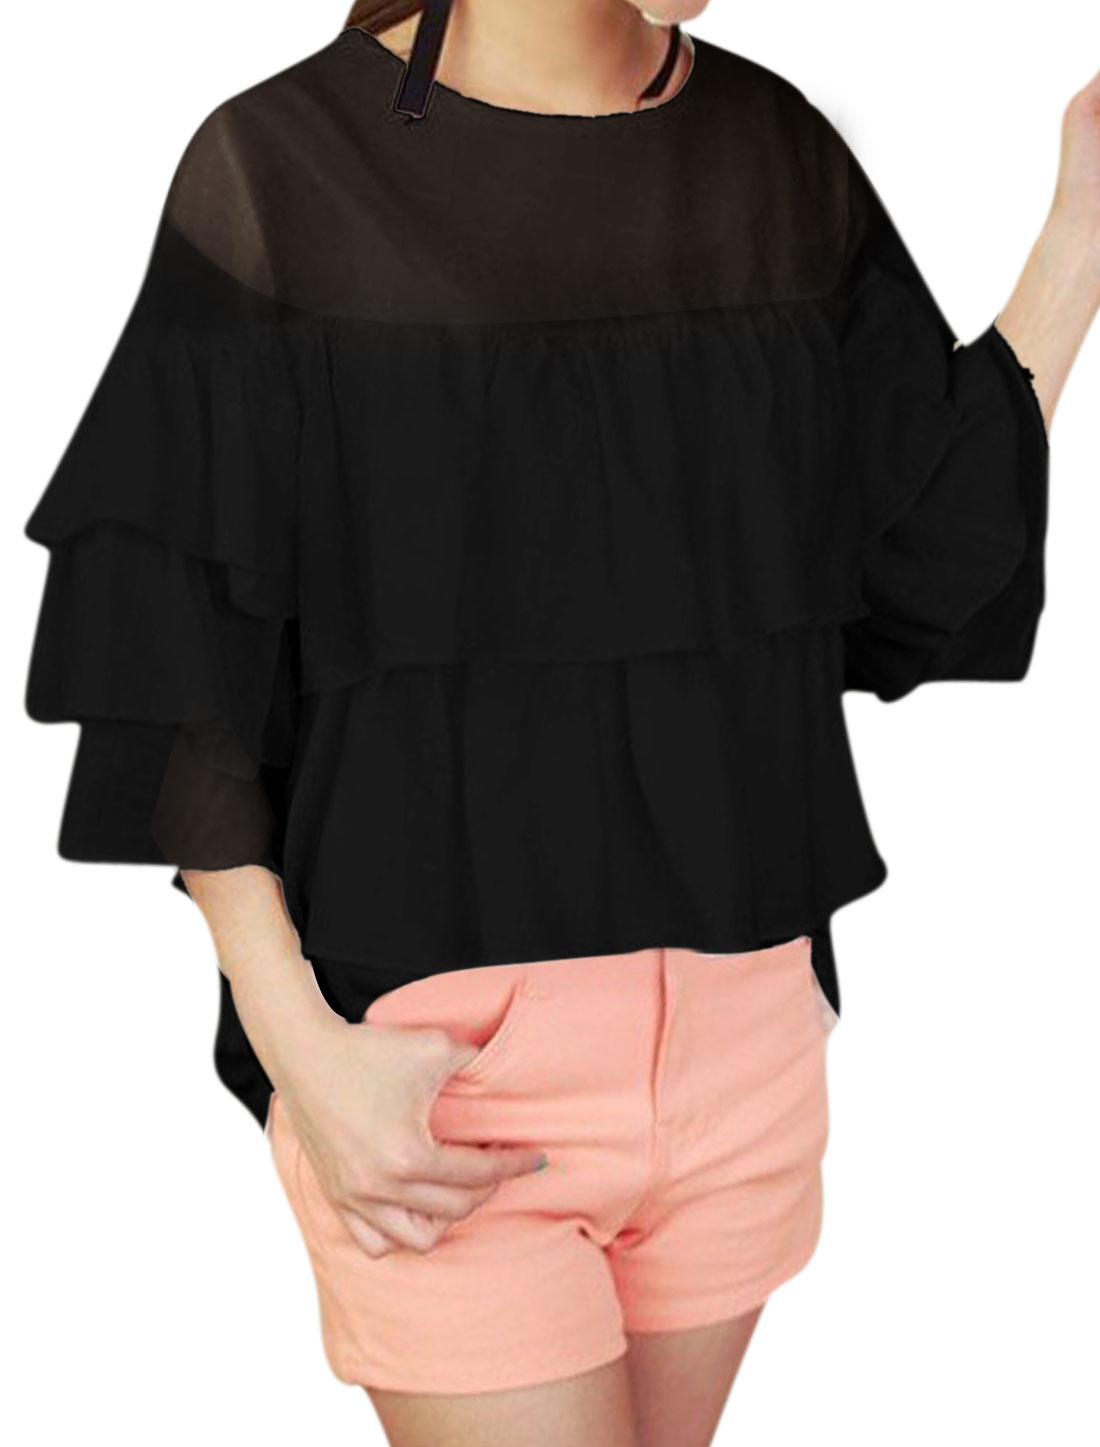 Lady Round Neck 3/4 Sleeve Tiered Design Semi Sheer Top Black XS